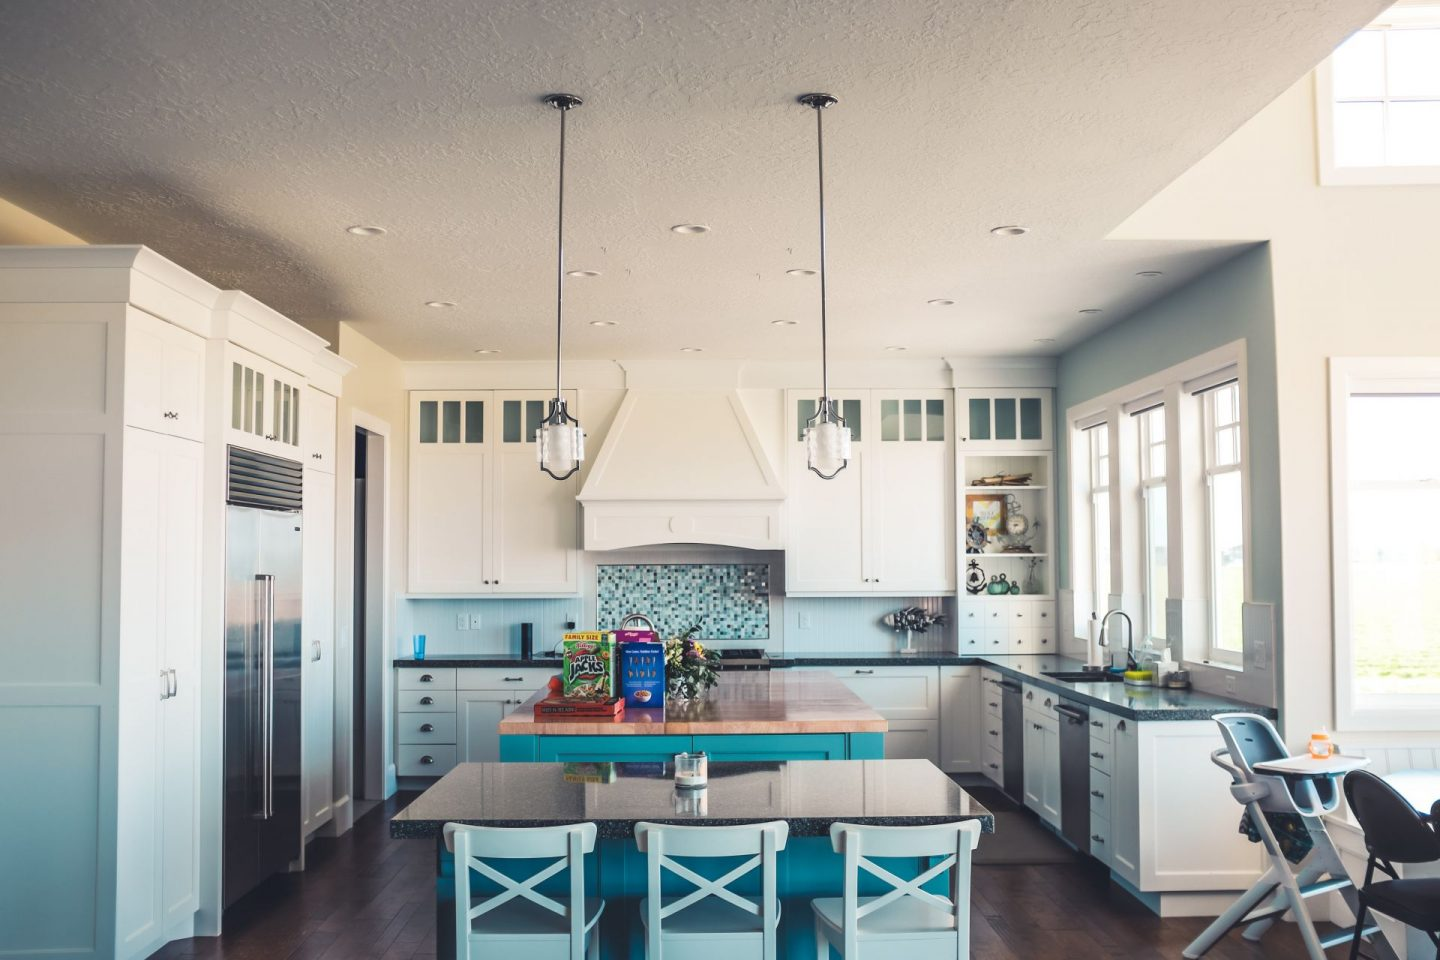 house cleaning, Ten House Cleaning Tips for Busy Householders